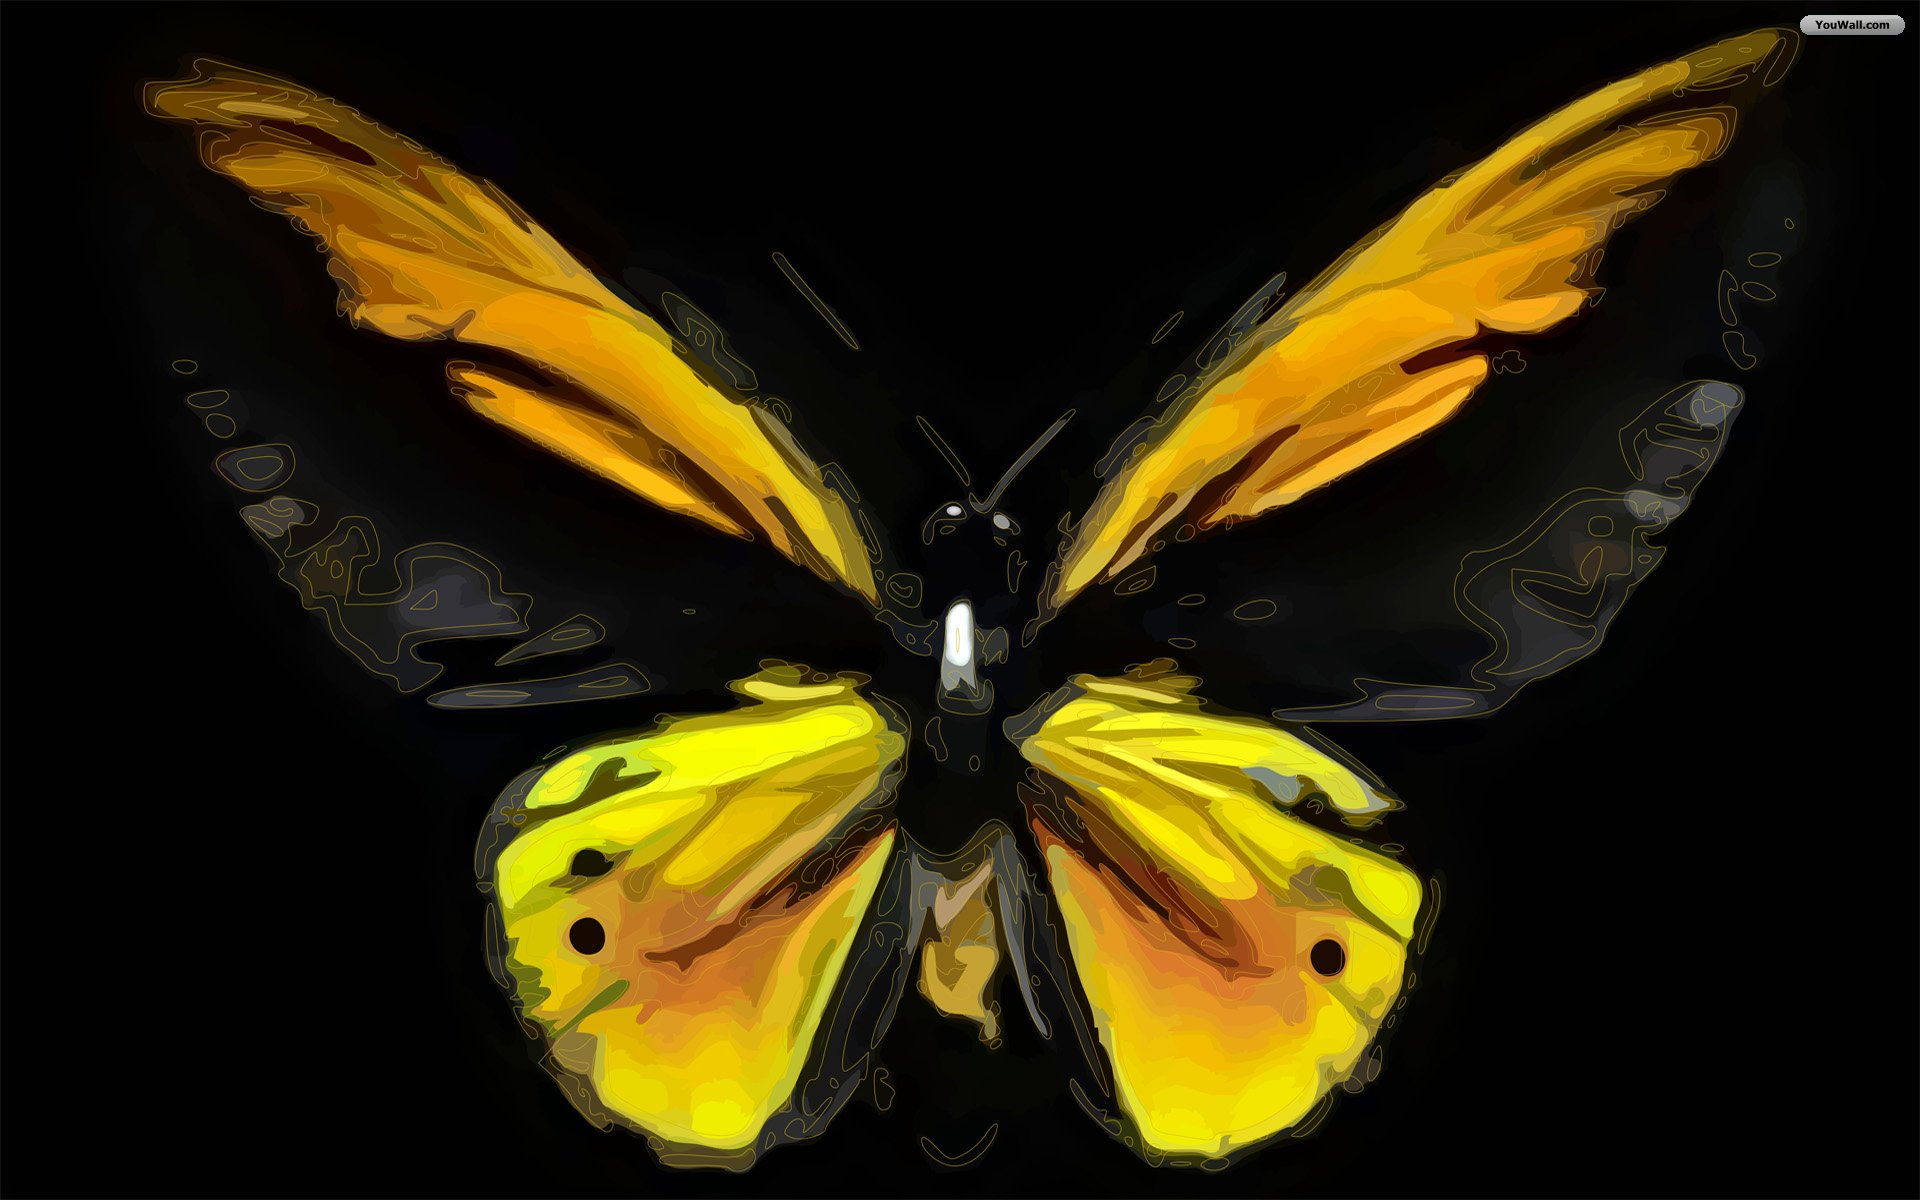 Black And Yellow Wallpapers 6 Free Hd Wallpaper ...